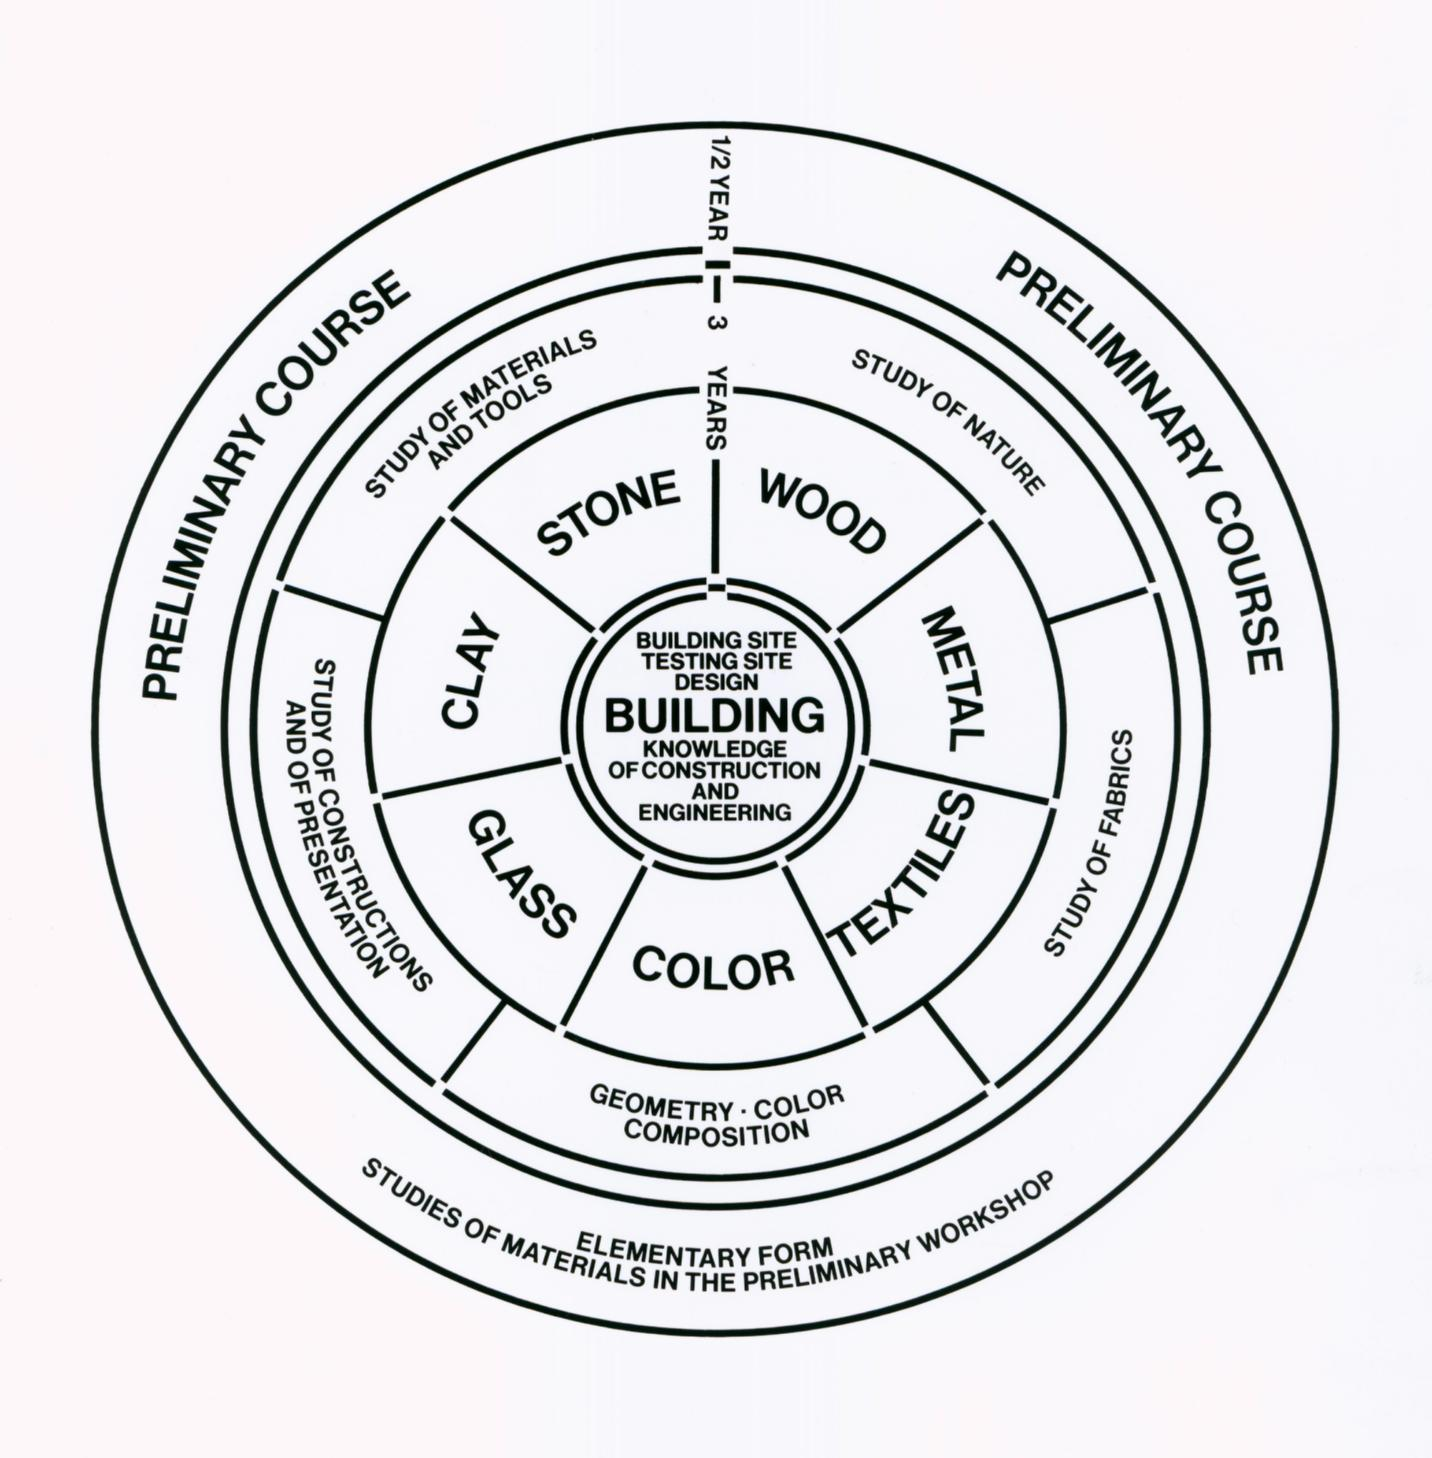 2-bauhaus-curriculum-diagram.jpg